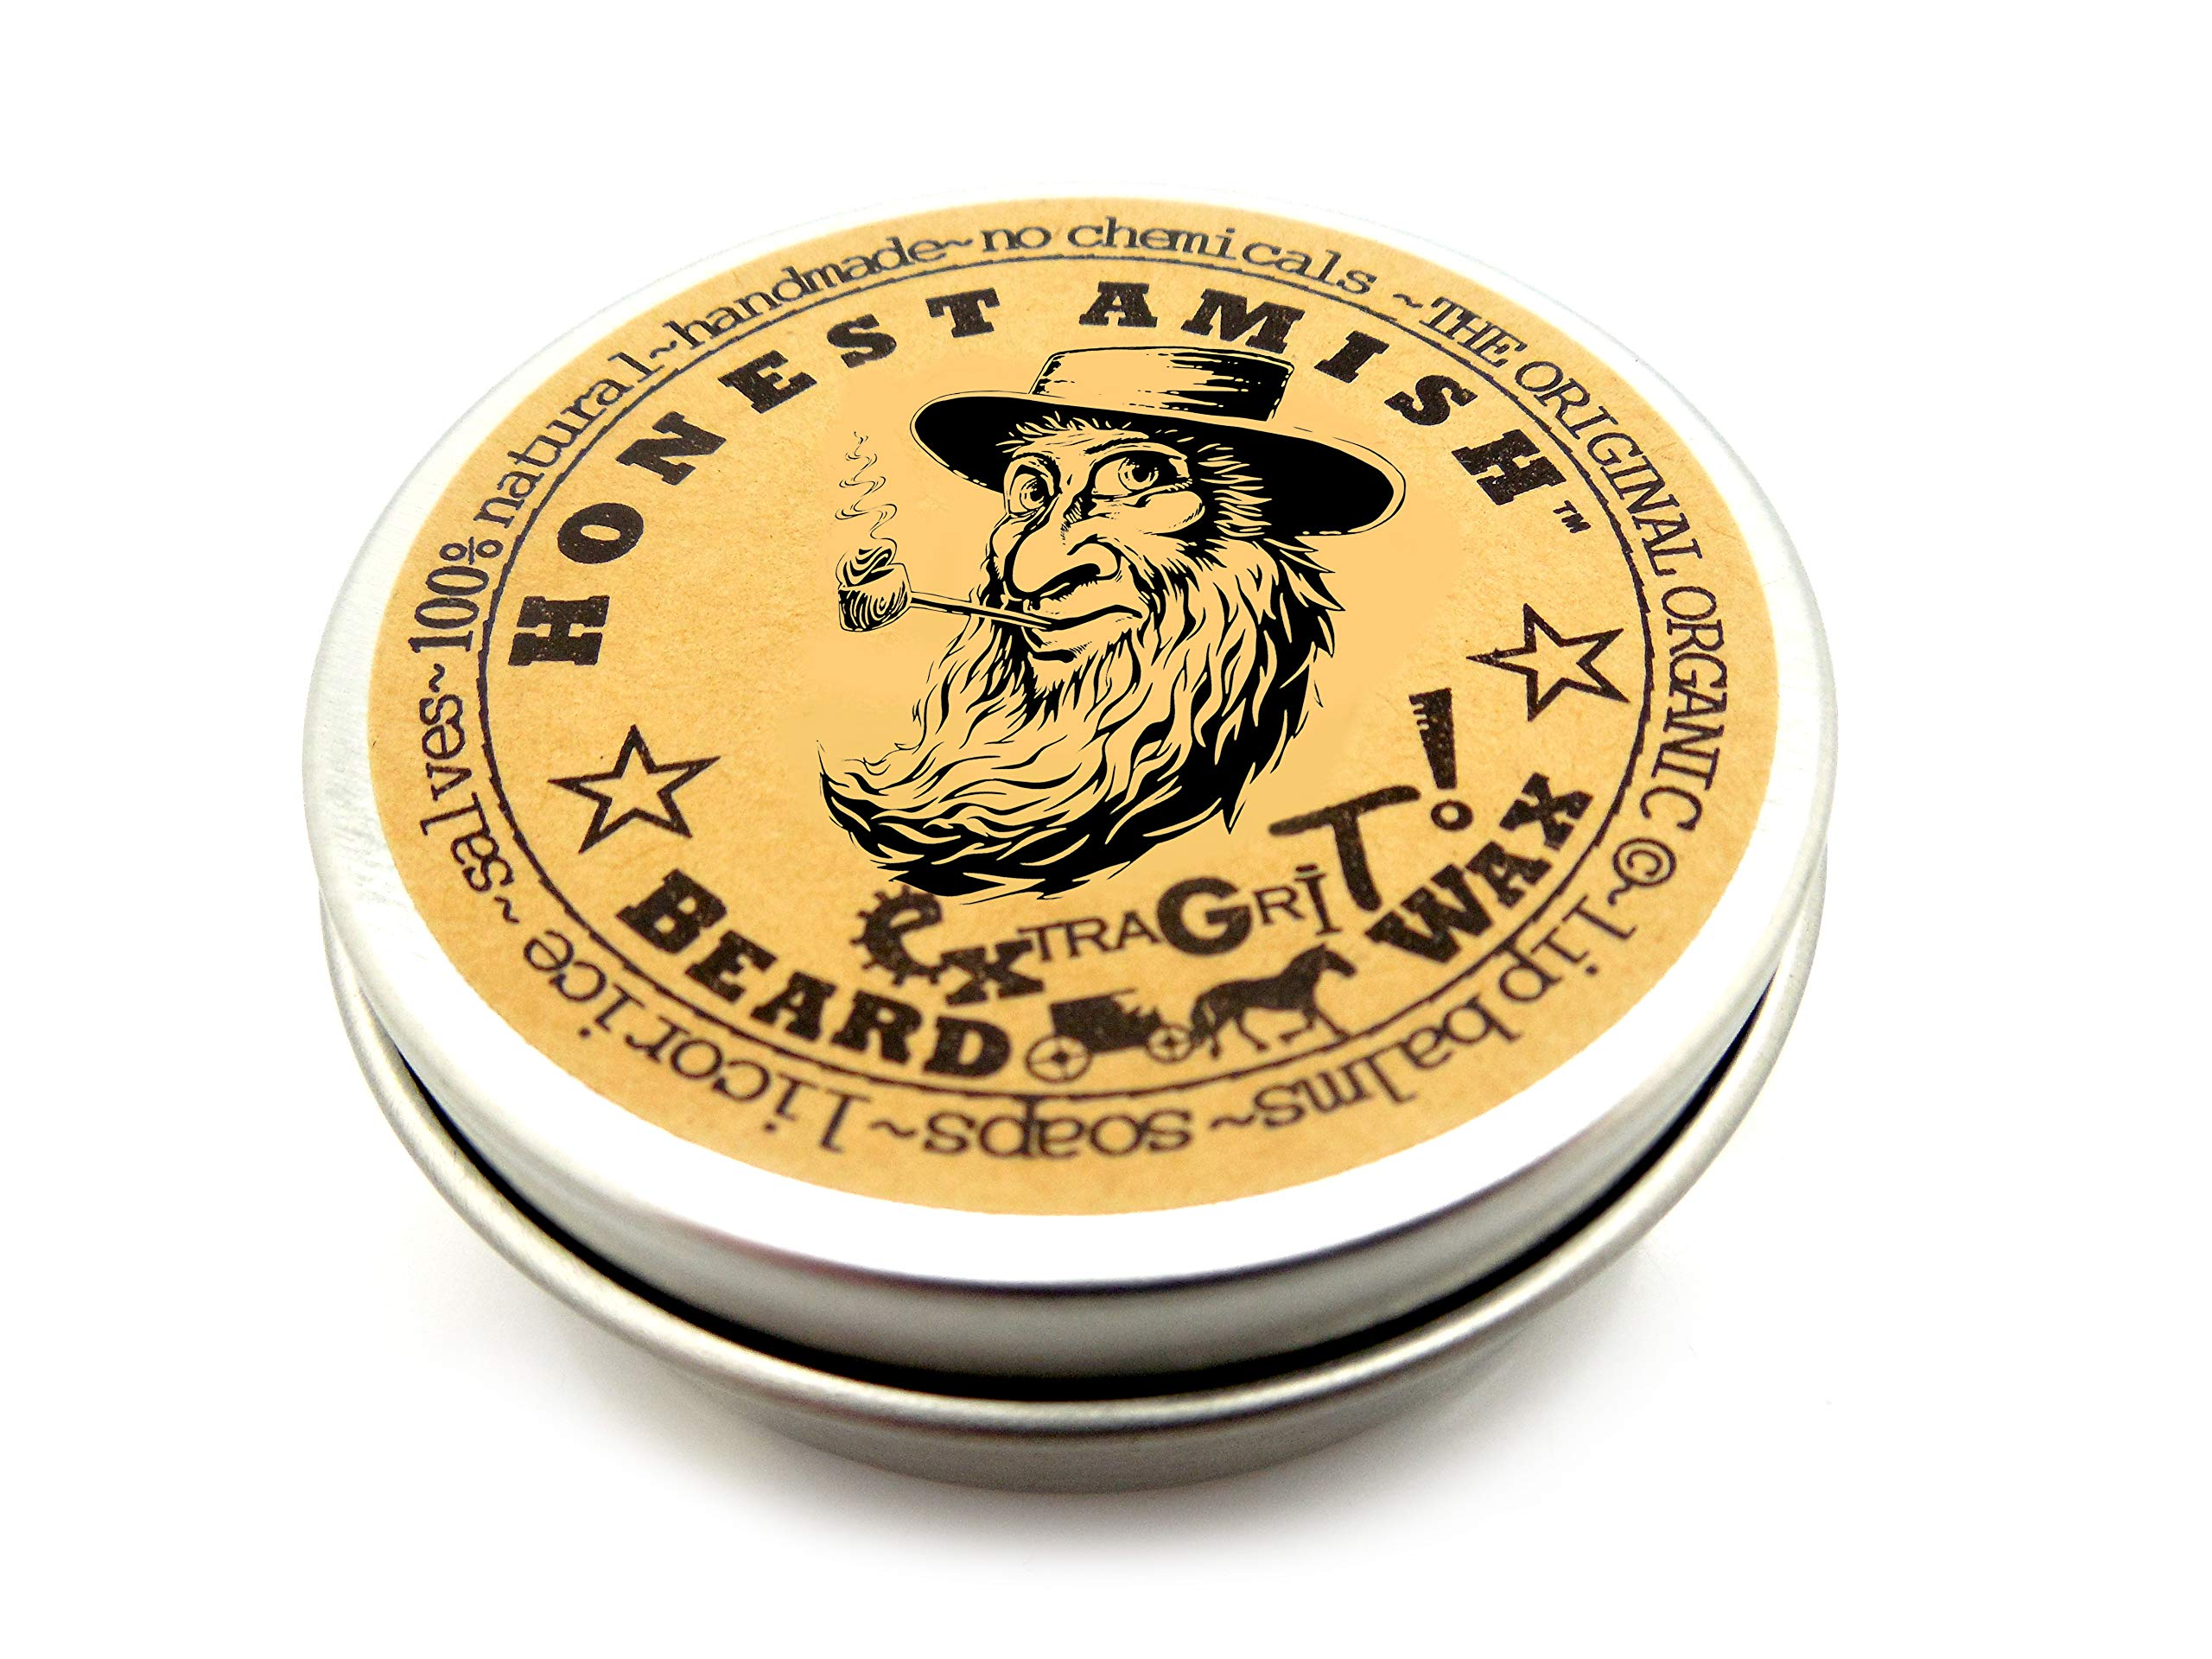 Honest Amish Extra Grit Beard Wax - All Natural and Organic - Hair Paste and Hair Control Wax